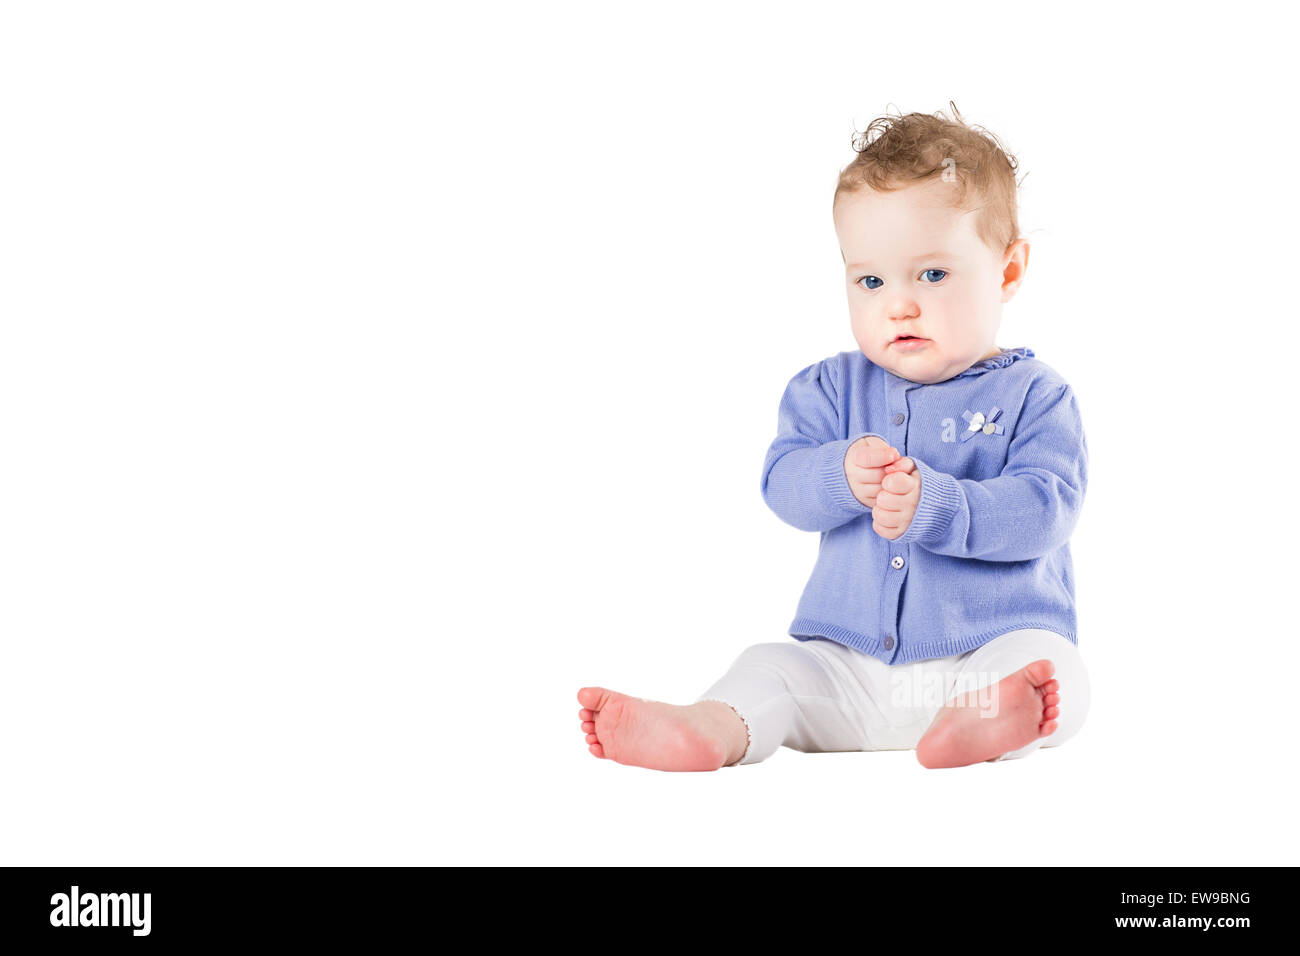 Beautiful baby girl wearing a purple sweater clapping her hands, isolated on white - Stock Image